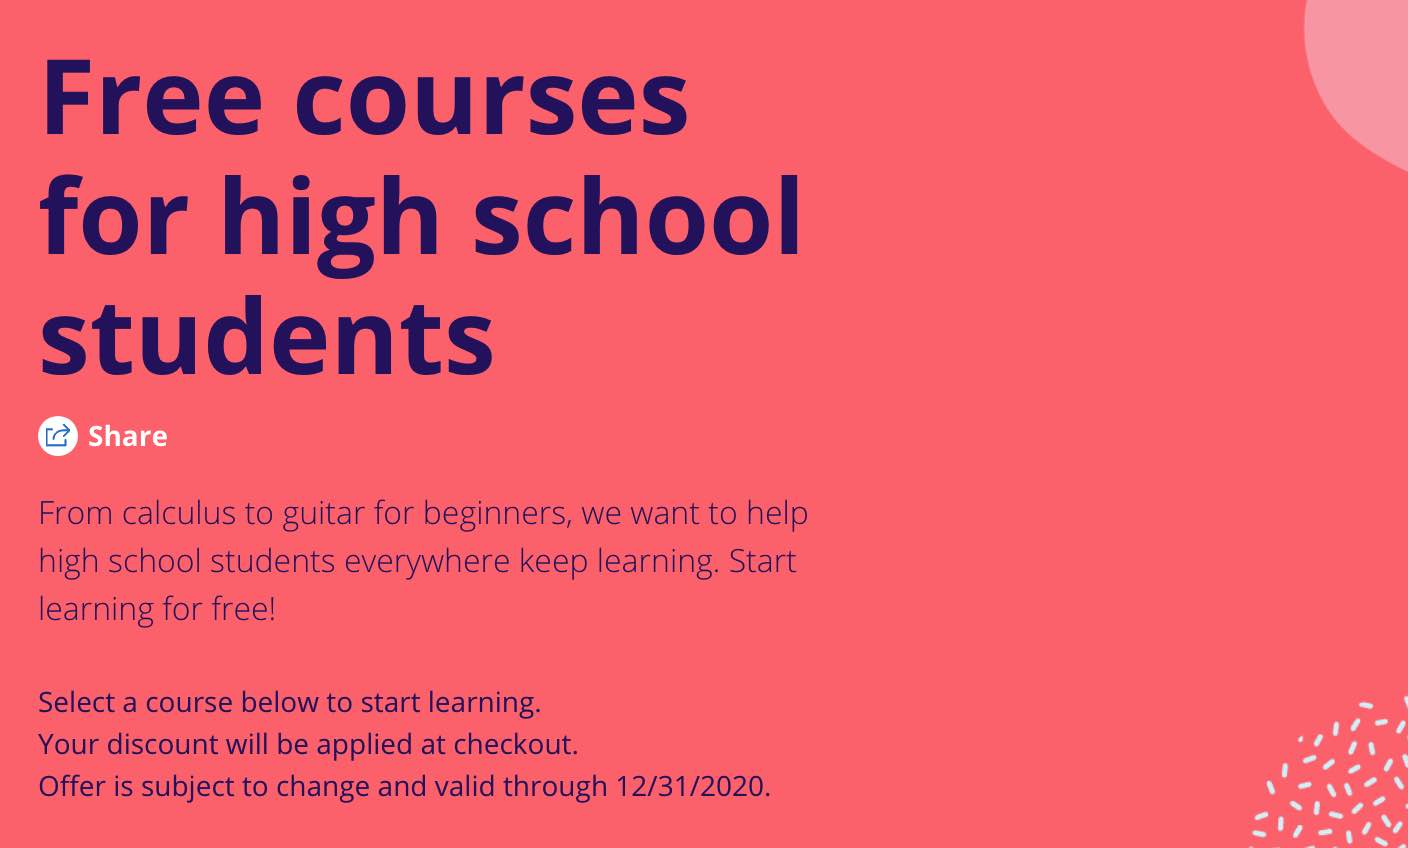 Courses For High School Students